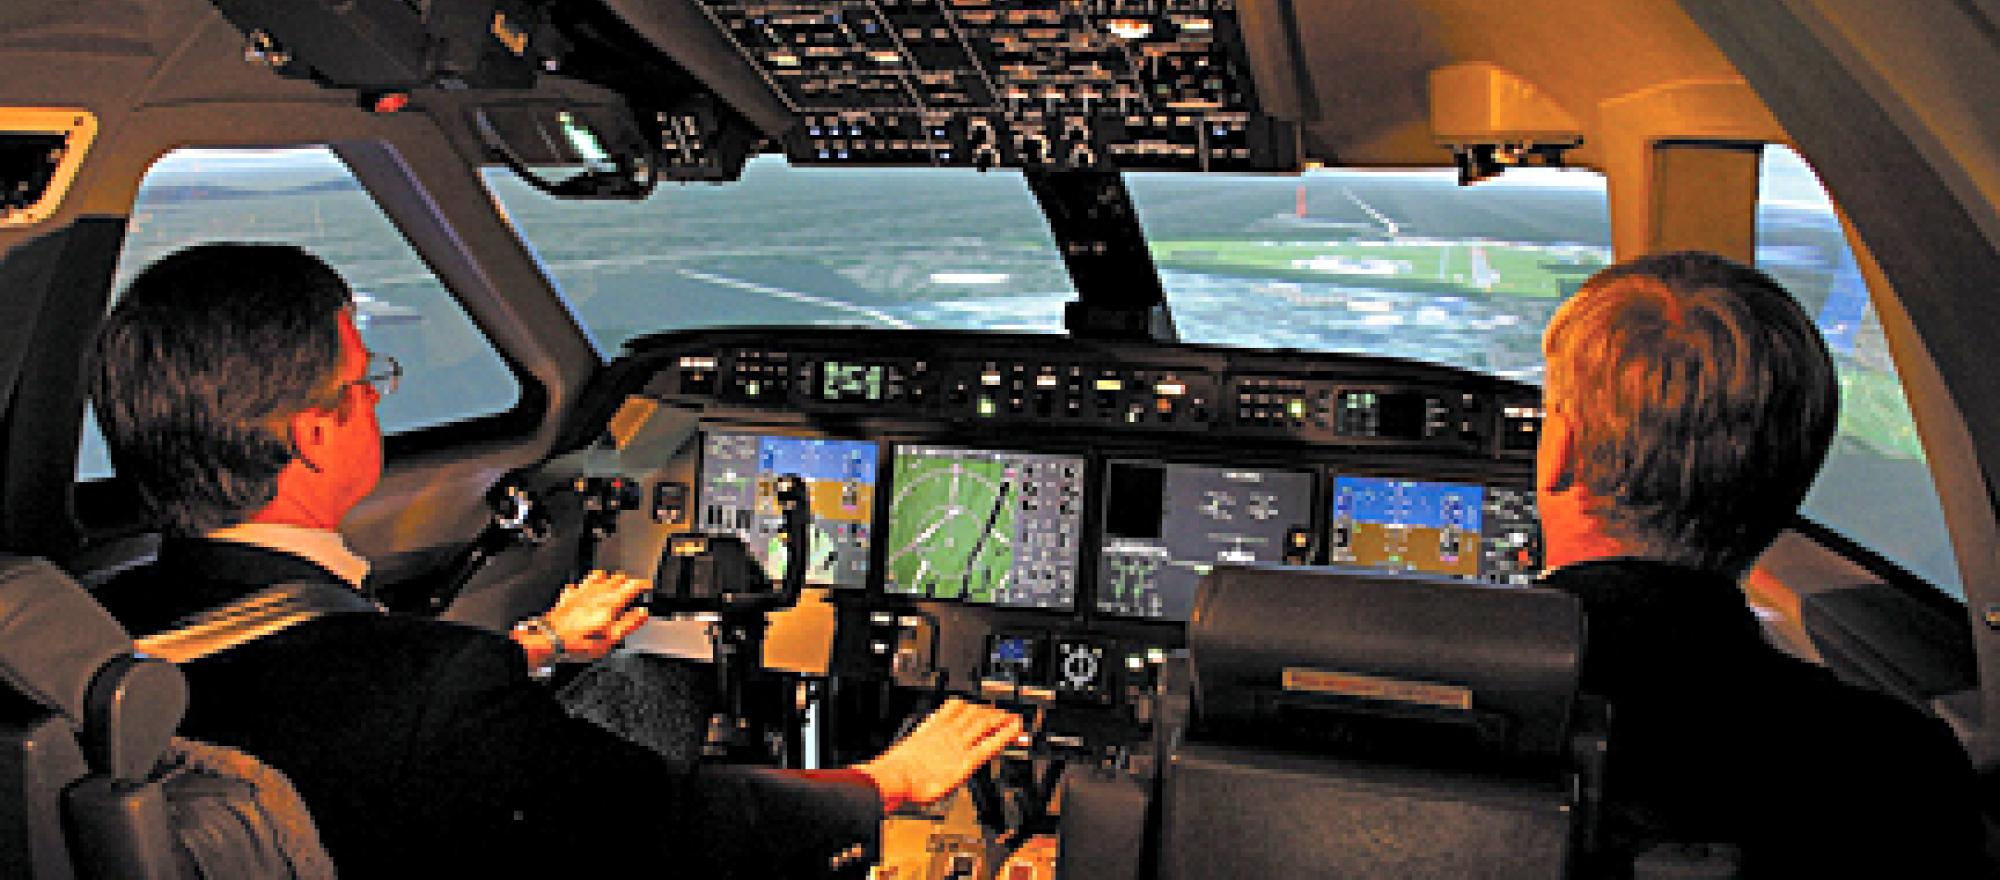 When an emergency happens, crews who have trained with full-motion simulators